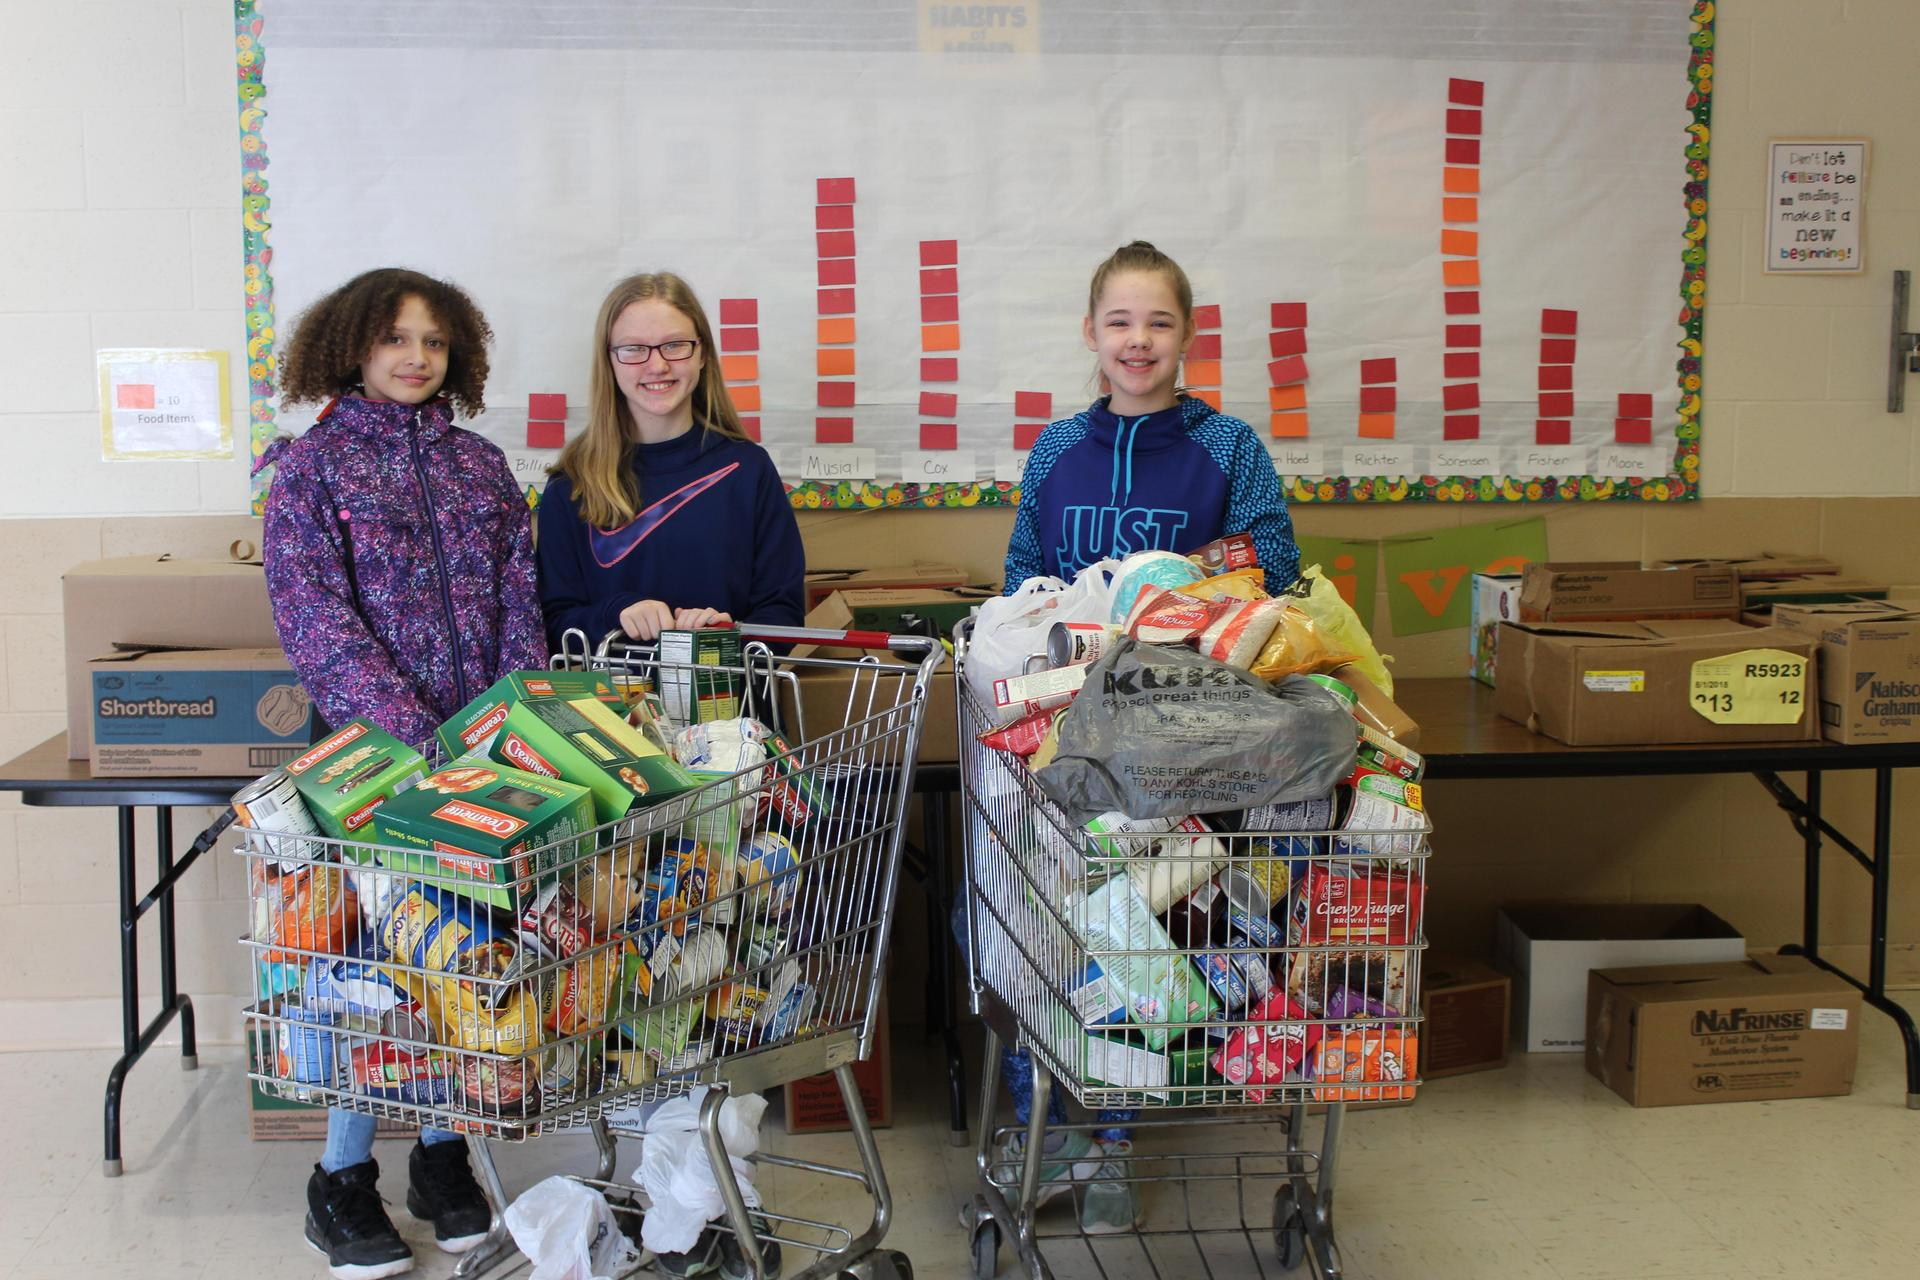 RACERS with donations in grocery cart